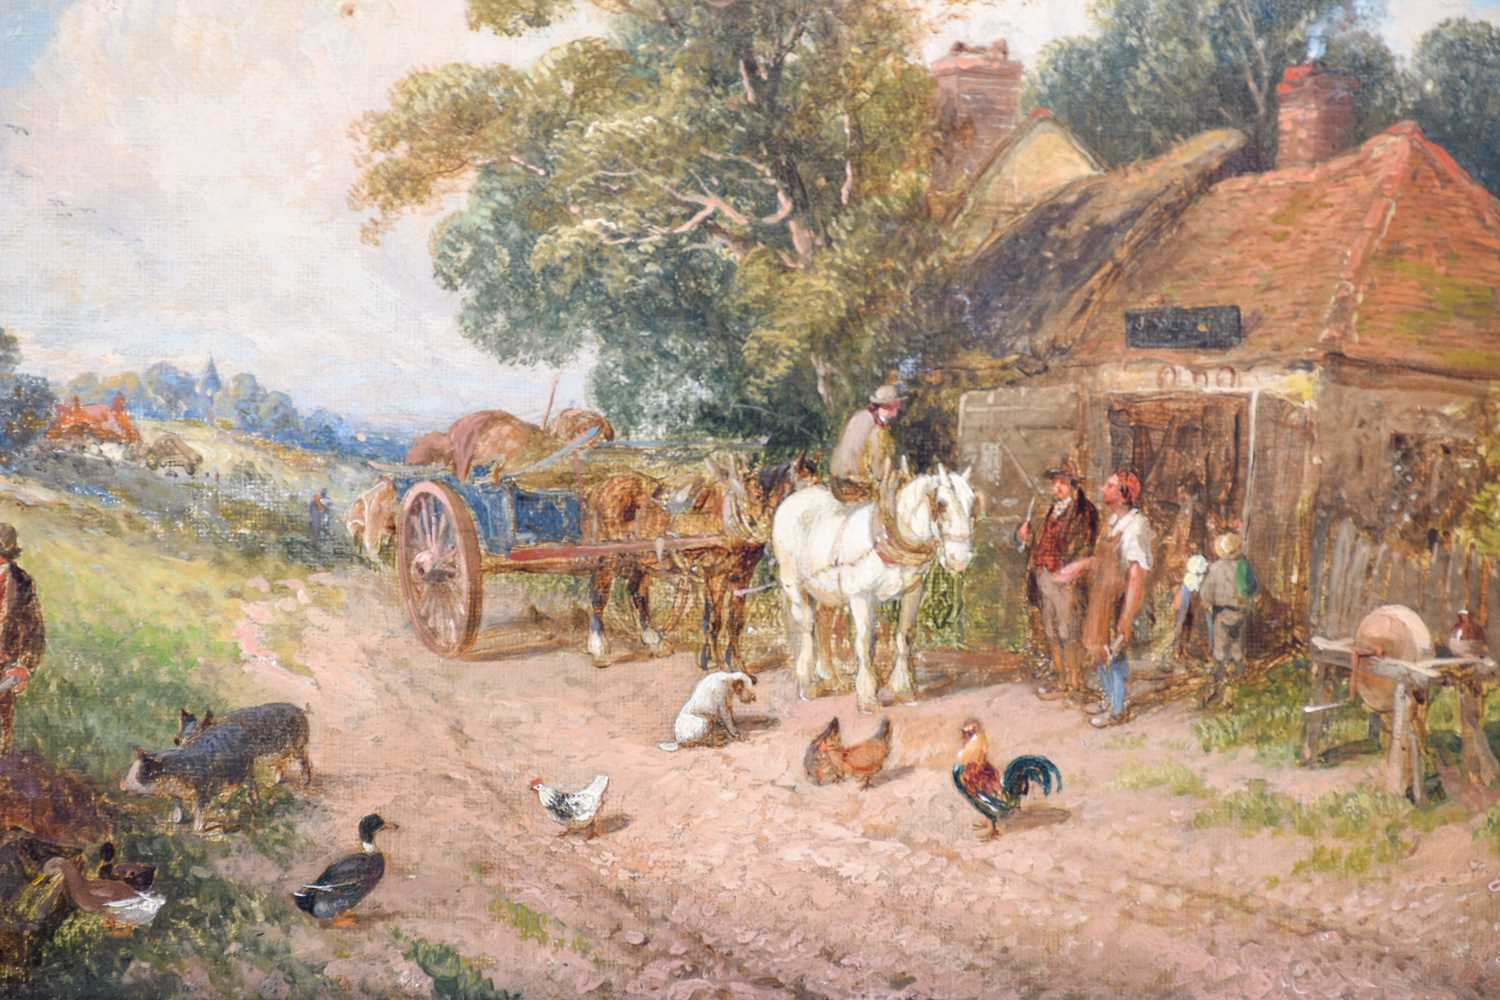 Edwin L. Meadows (fl. 1854-1872) British, a rural scene depicting a horse and cart beside a - Image 4 of 4